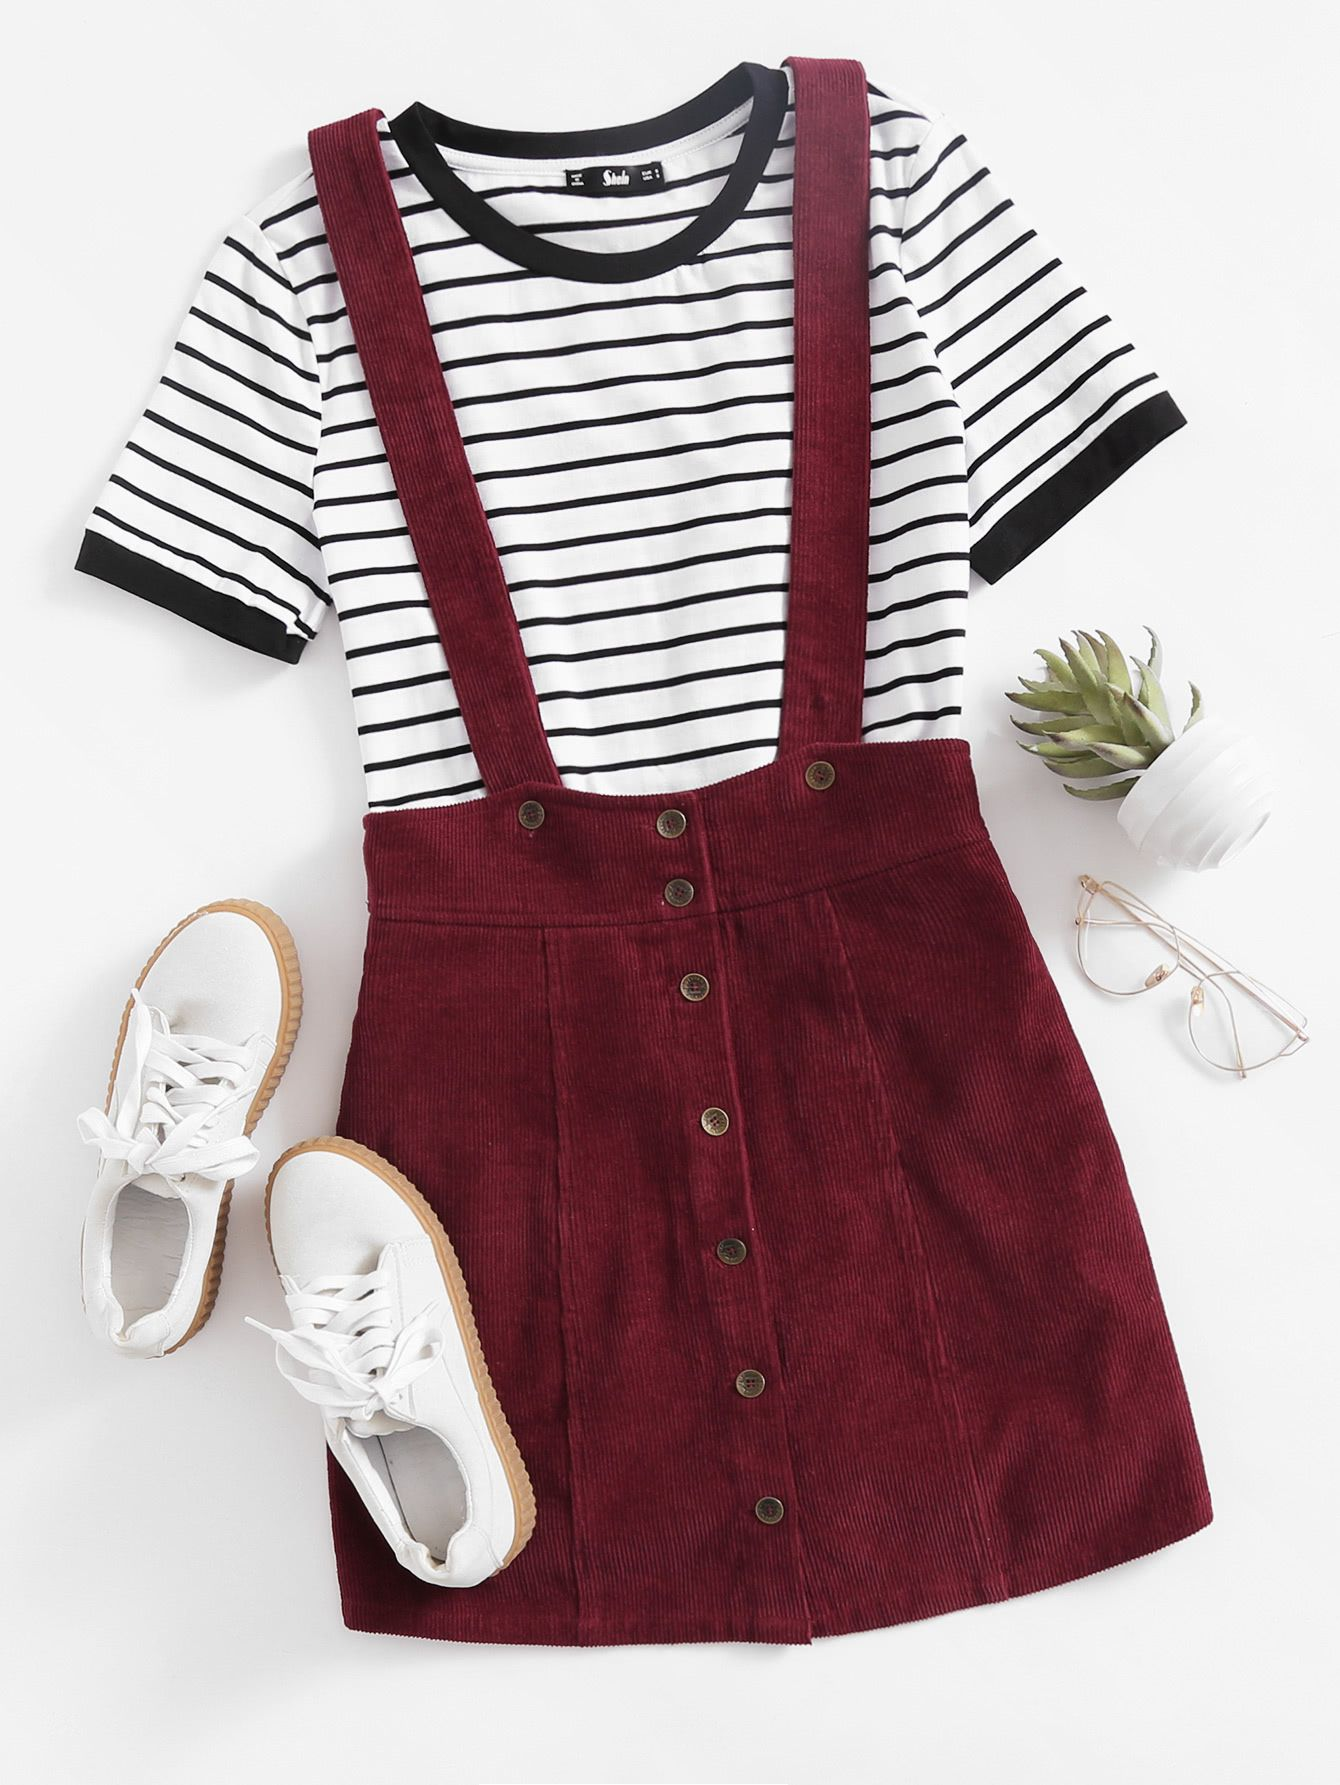 7e9cc80c2e Shop Button Up Cord Pinafore Skirt online. SheIn offers Button Up Cord  Pinafore Skirt & more to fit your fashionable needs.